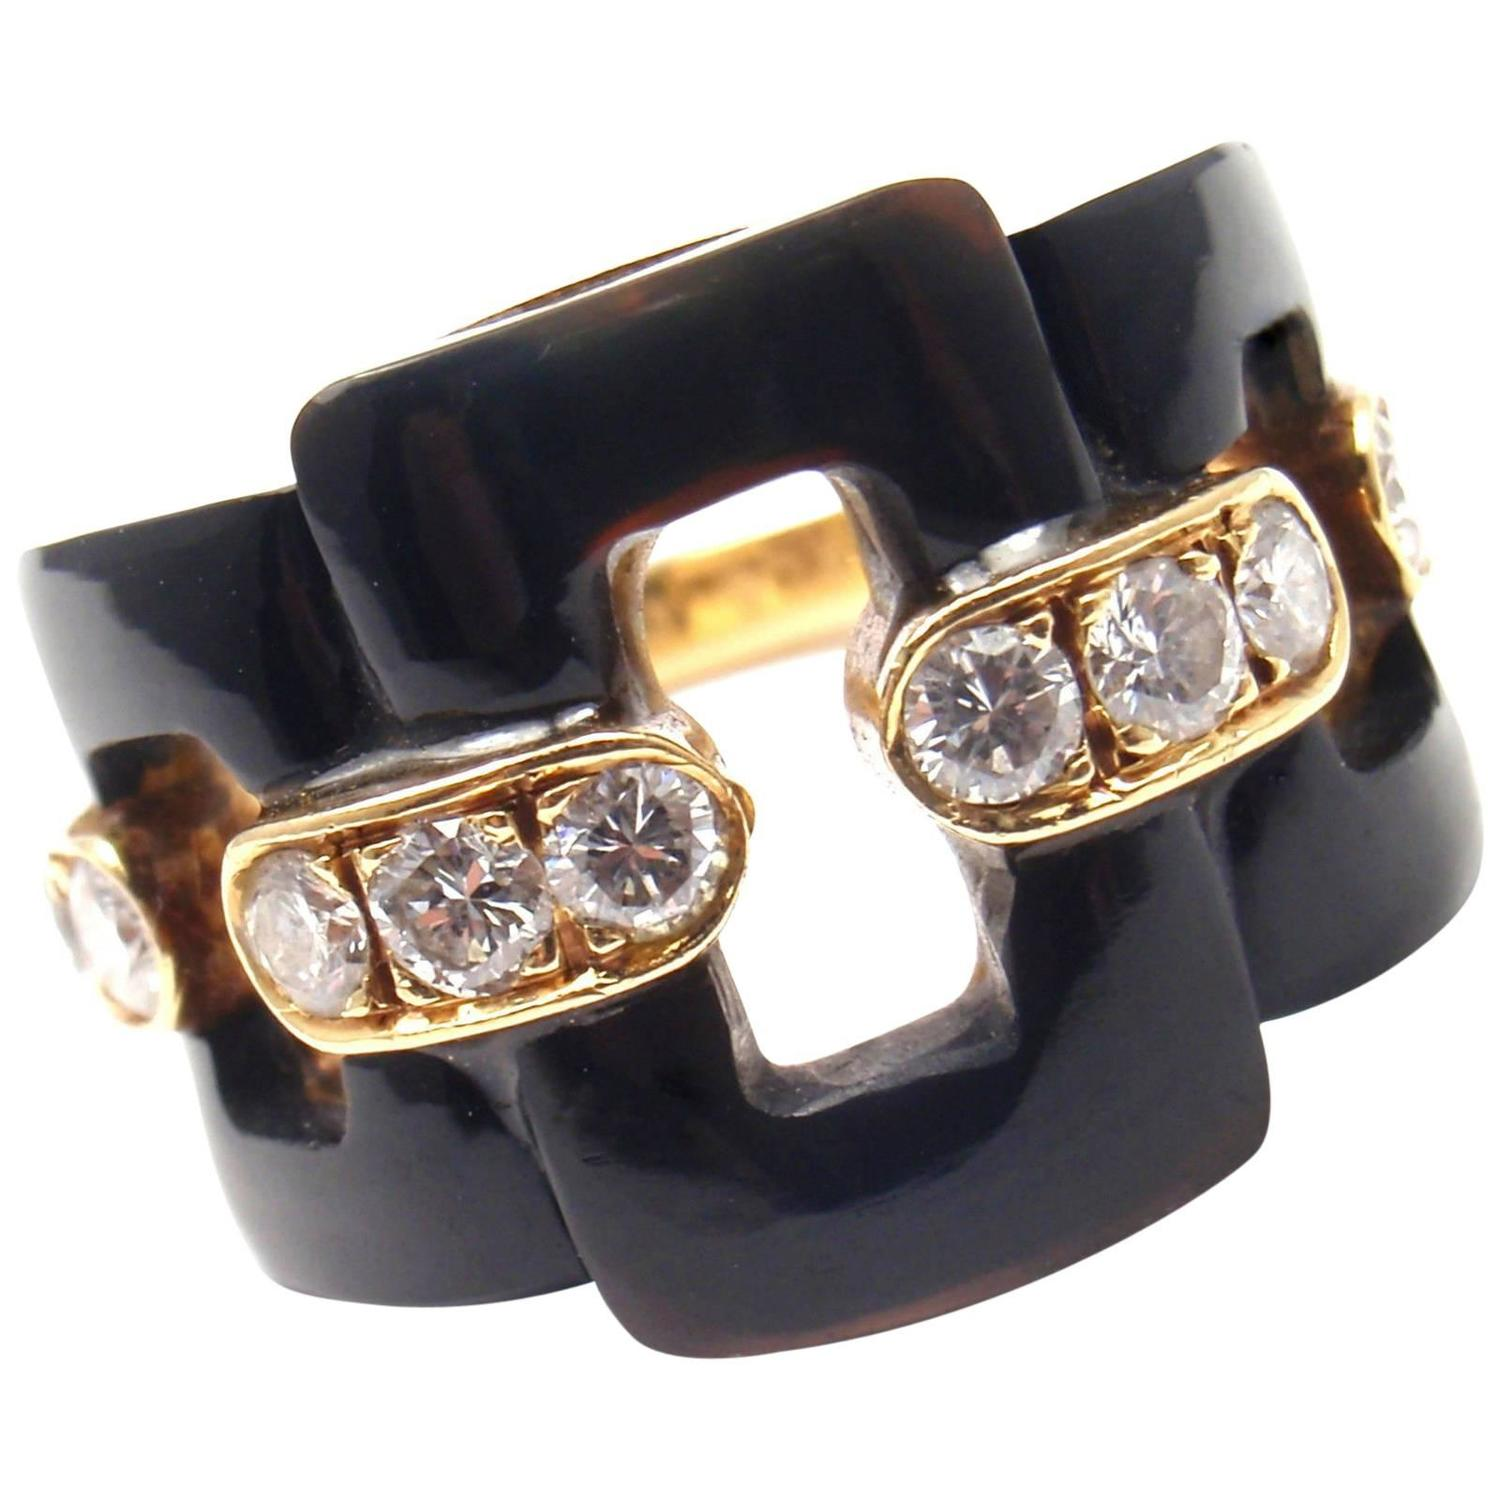 Van Cleef and Arpels Black yx Diamond Gold Ring For Sale at 1stdibs